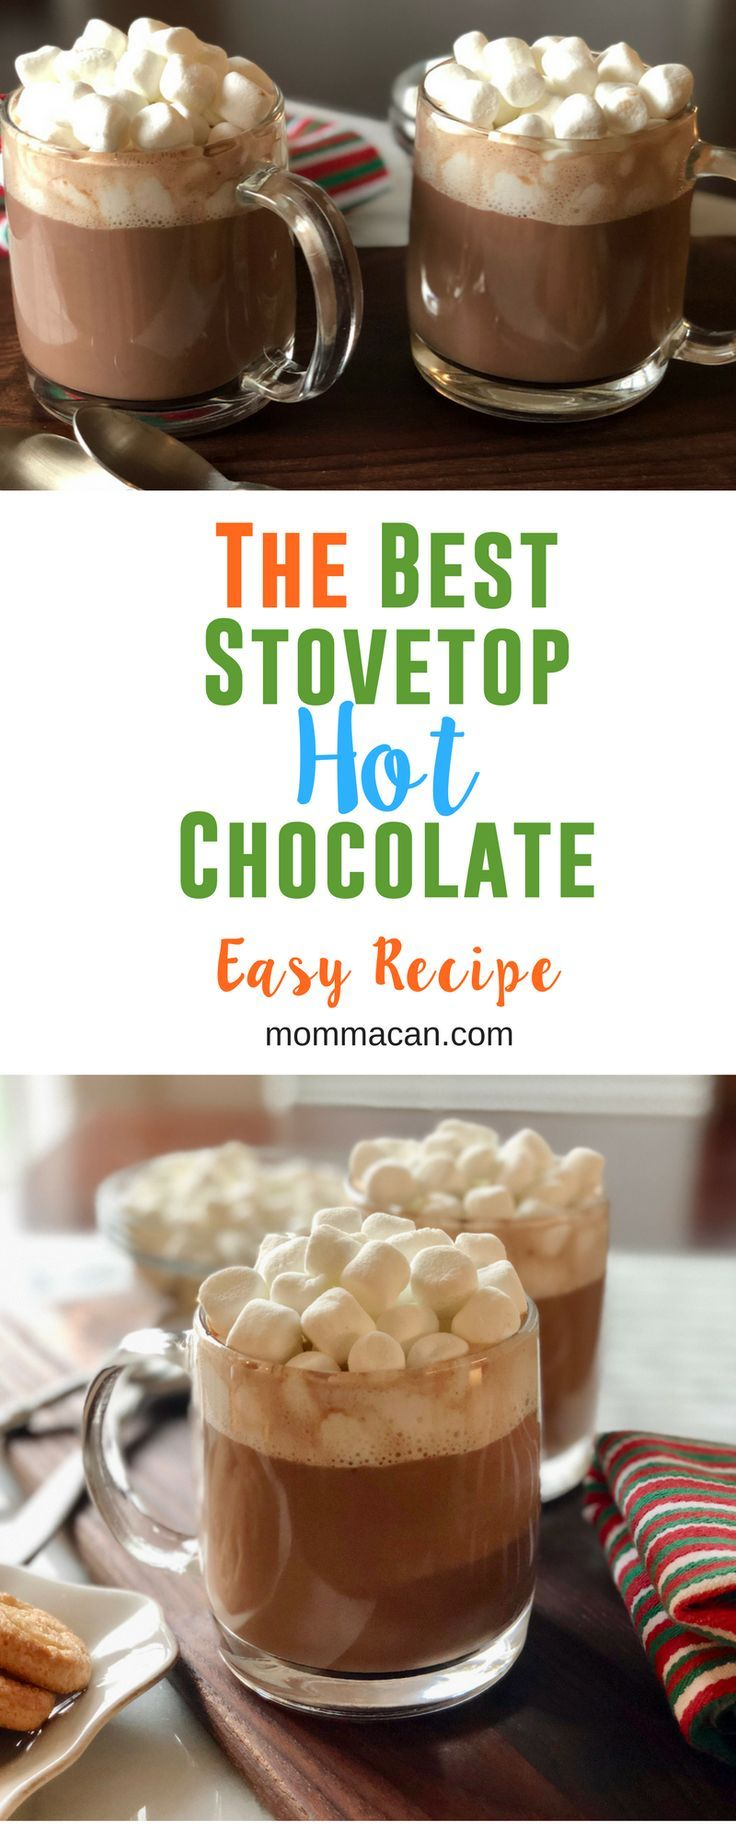 The Best Stovetop Hot Chocolate Recipe! This is the world's best hot chocolate recipe!  A family favorite perfect for cool weather! #hot chocolate #hotcocoa via @mommacan